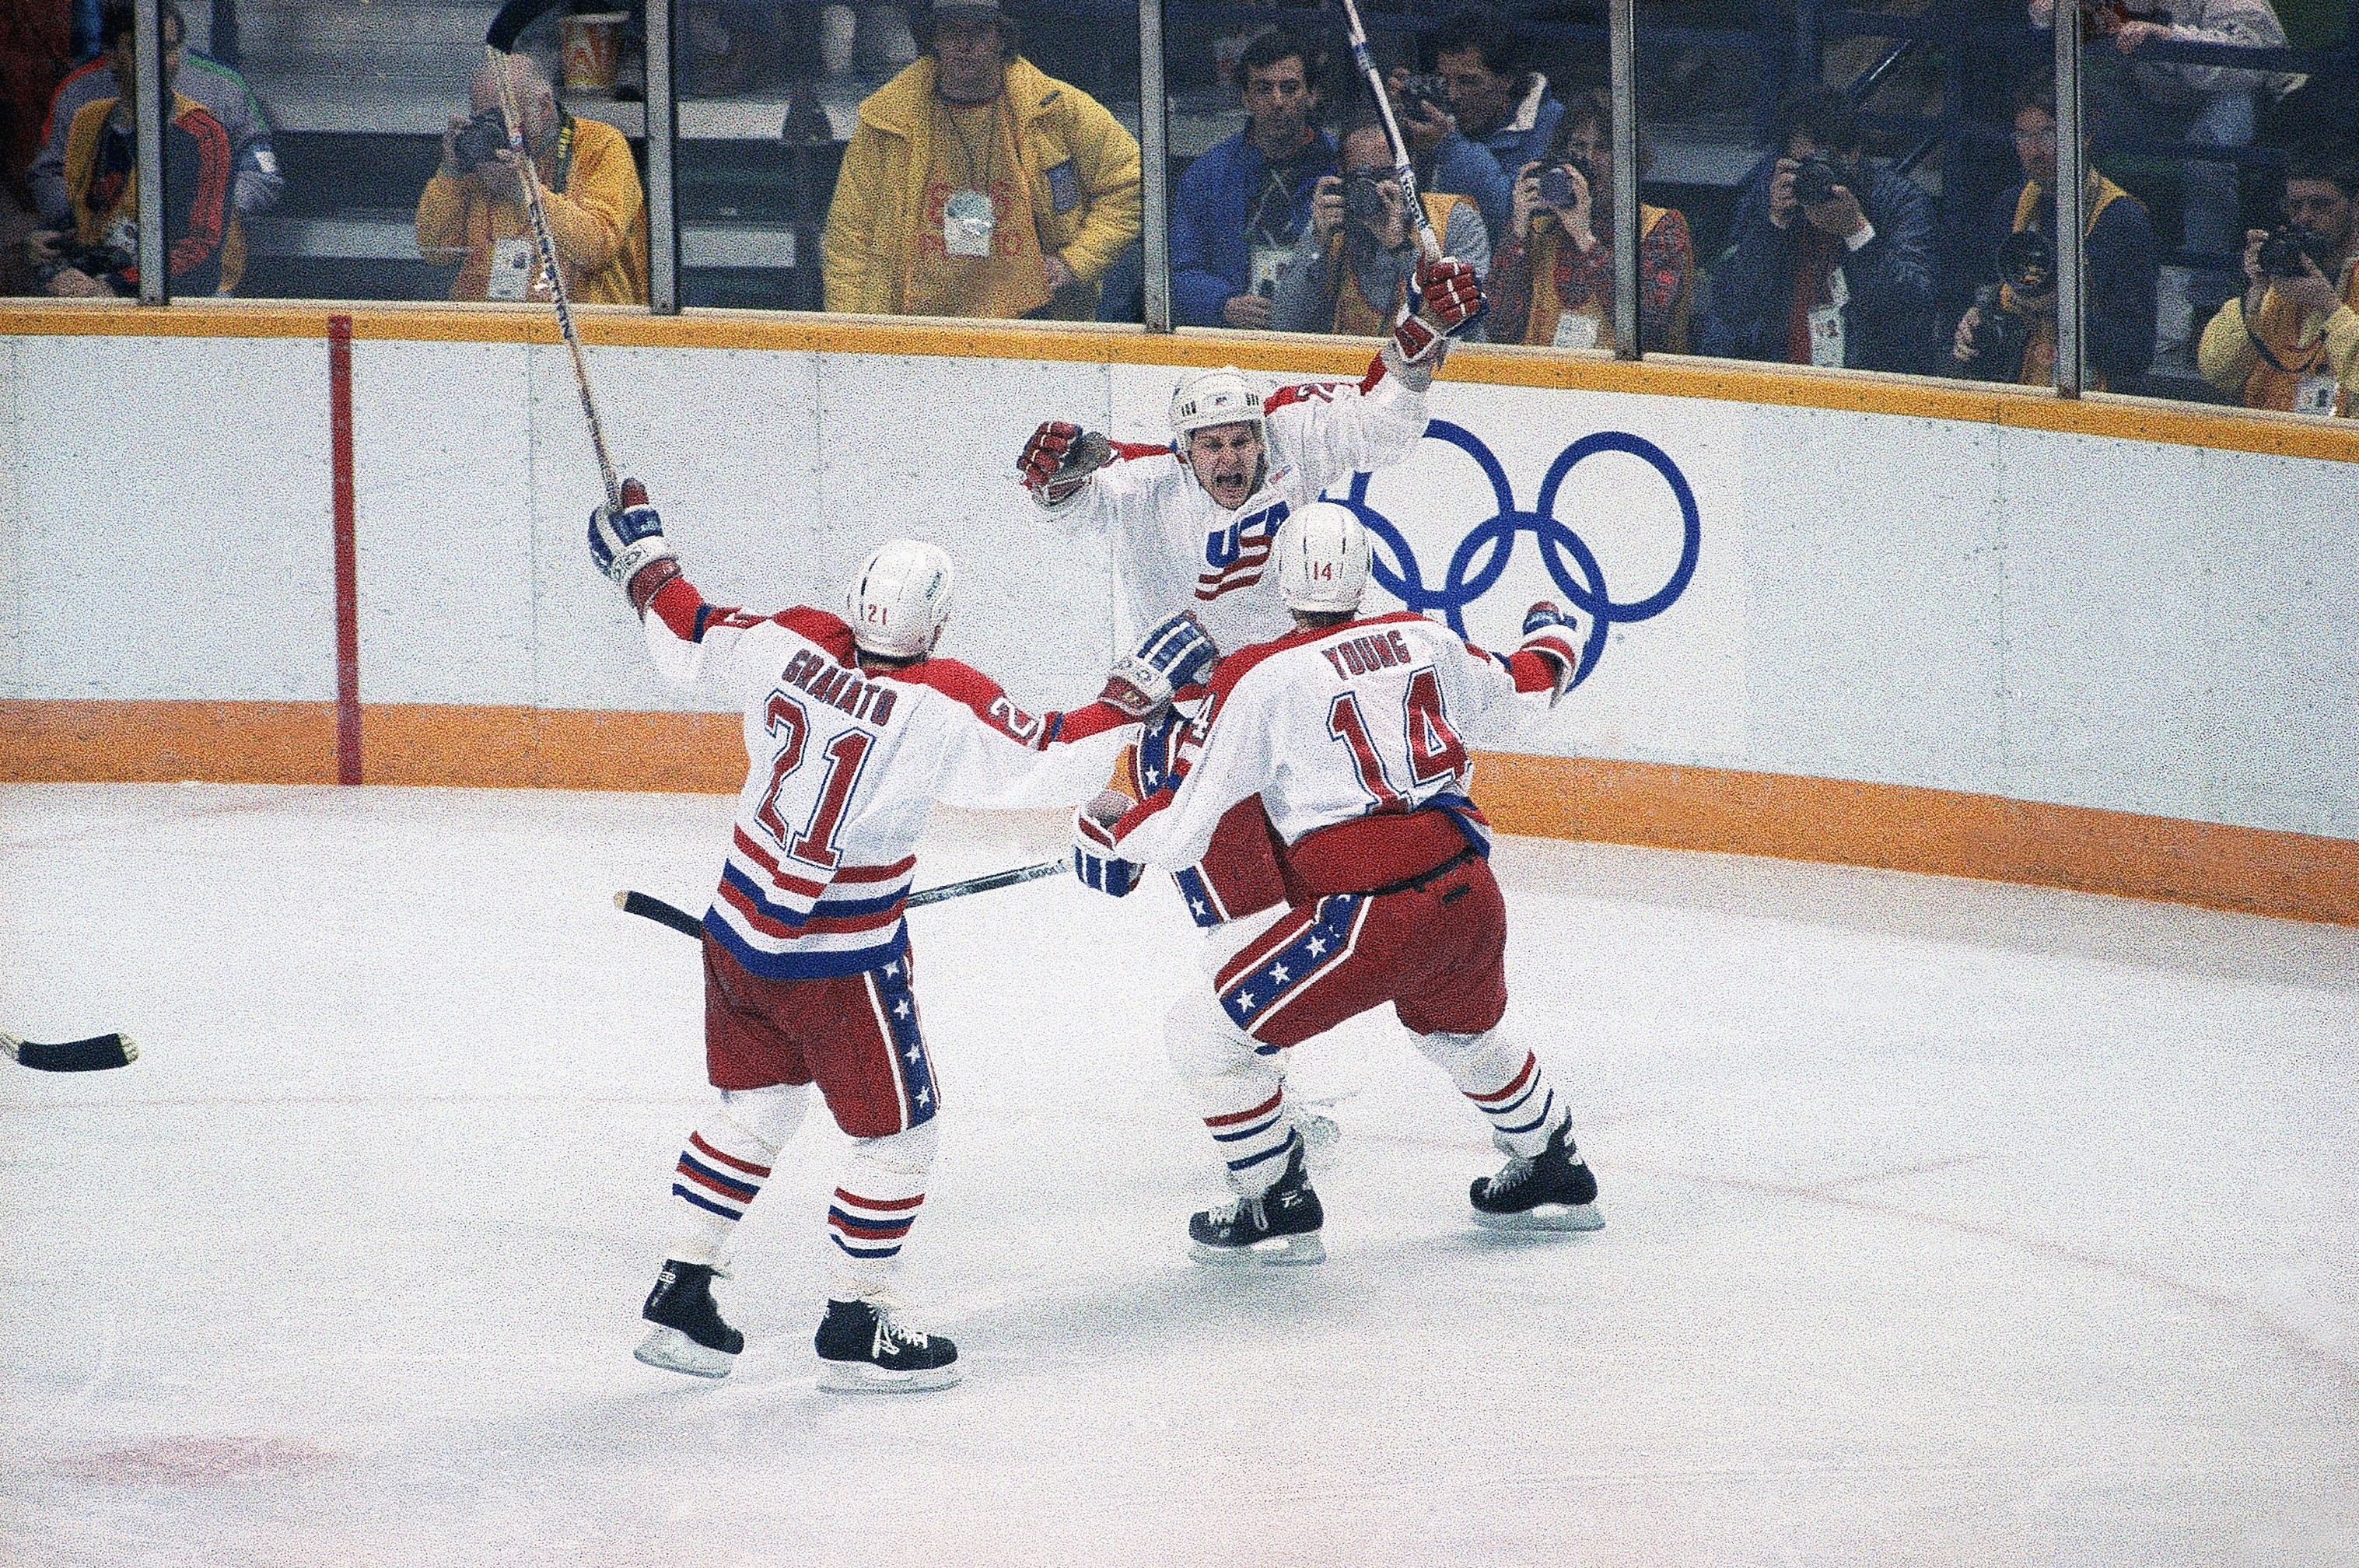 FILE - In this Feb. 15, 1988, file photo, Craig Millen of the United States heads for the arms of teammates Tony Granato (21) and Scott Young (14) after he scored a goal in the first period of a hockey game against Czechoslovakia at the Winter Olympics in Calgary. The 2018 Winter Games in Pyeongchang, South Korea will present a much different situation from any previous Olympic men's hockey tournament in history. USA Hockey general manager Jim Johannson said his team won't play any exhibition games with most U.S. players arriving in South Korea on Feb. 8. Johannson said the U.S. will practice Feb. 10-13 and get in a game-day skate Feb. 14, which coach Tony Granato feels will be enough preparation. (AP Photo/Steve Simon, File)